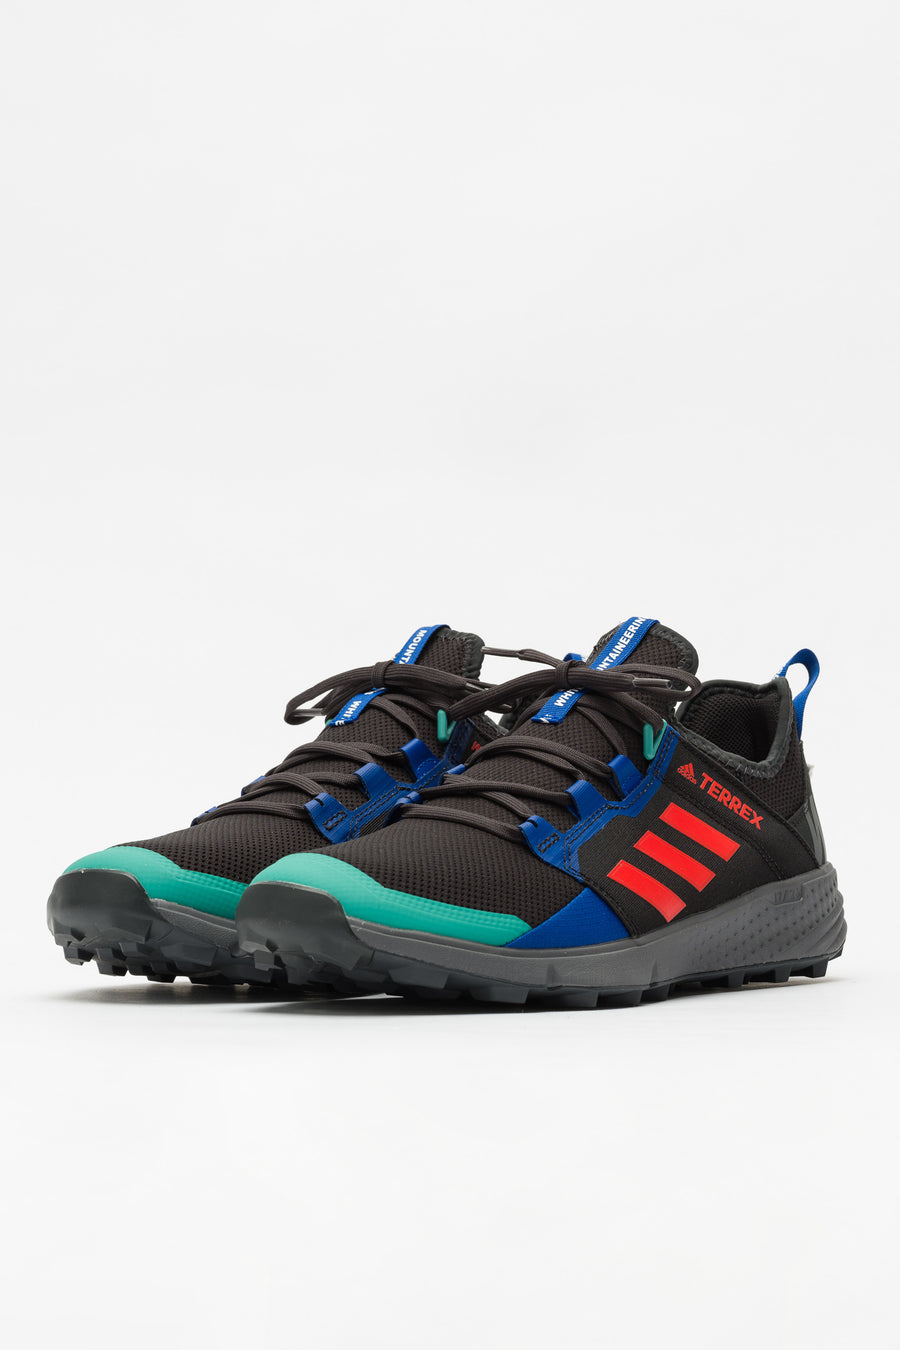 adidas White Mountaineering Terrex Agravic Speed Plus in Black - Notre